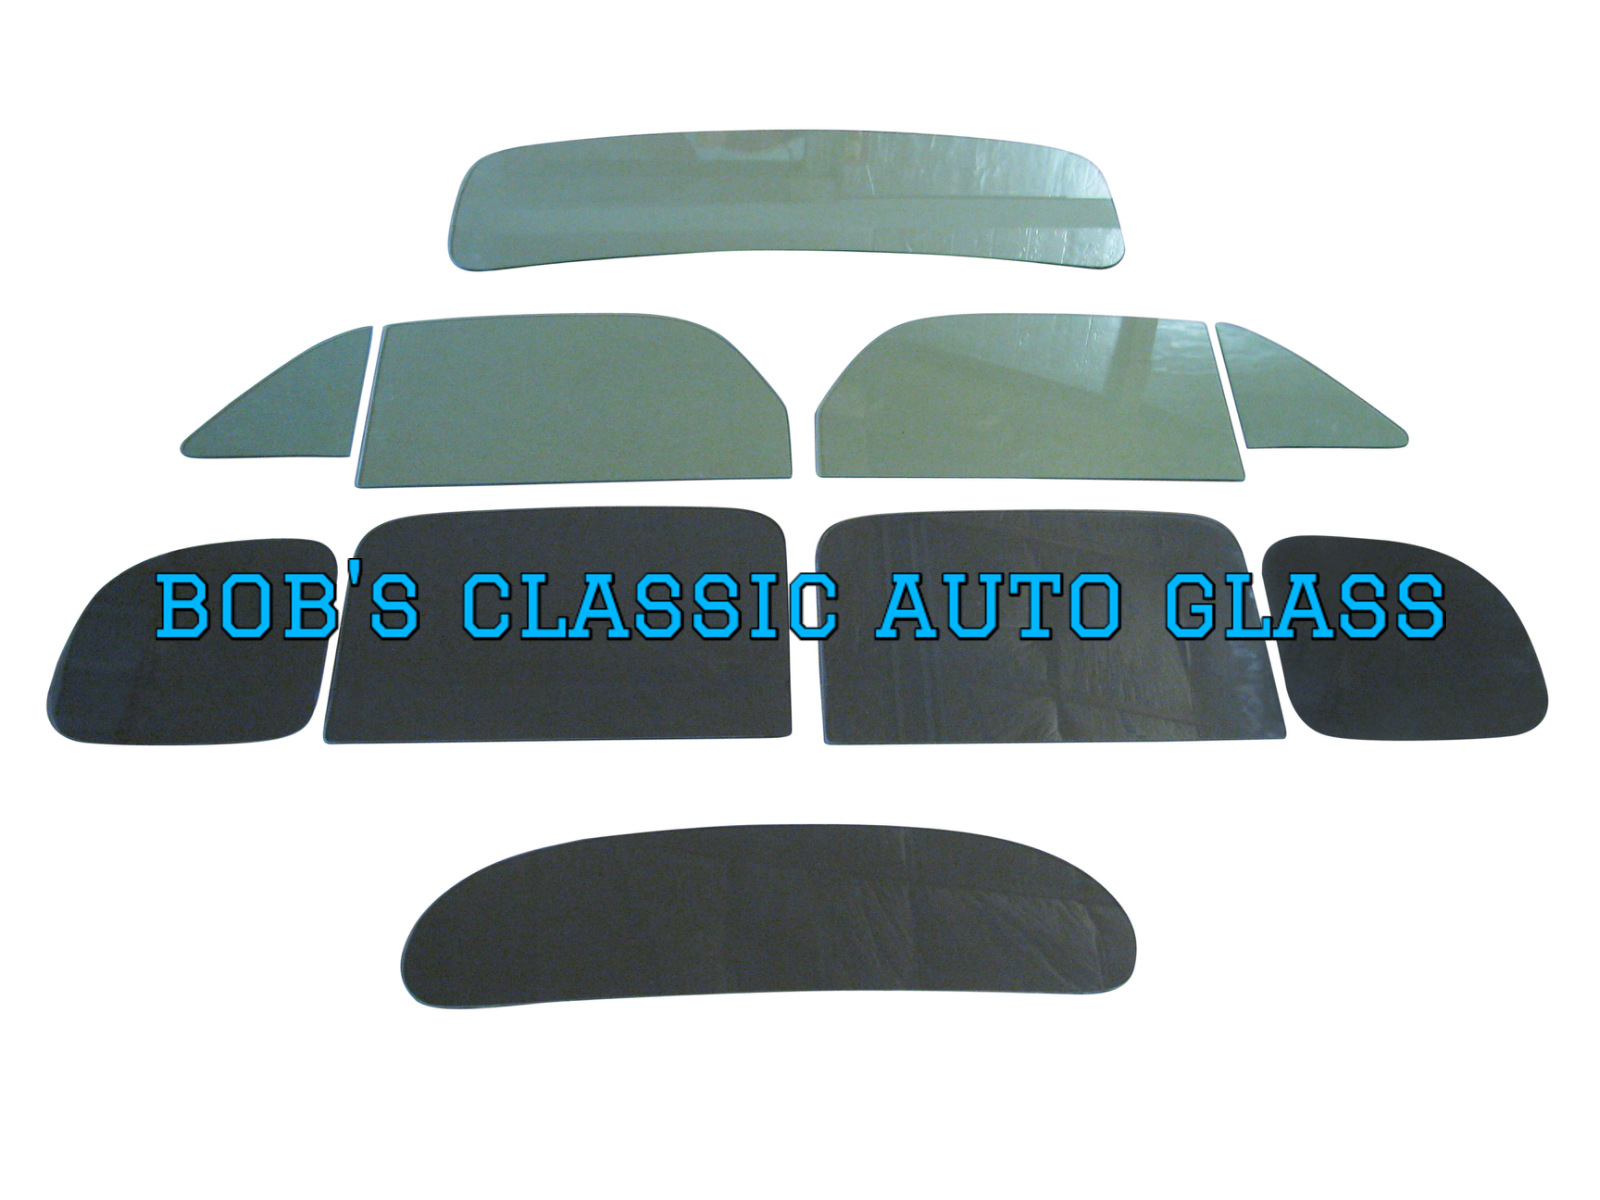 1937 Dodge D5 4 Door Sedan Classic Auto Glass Kit